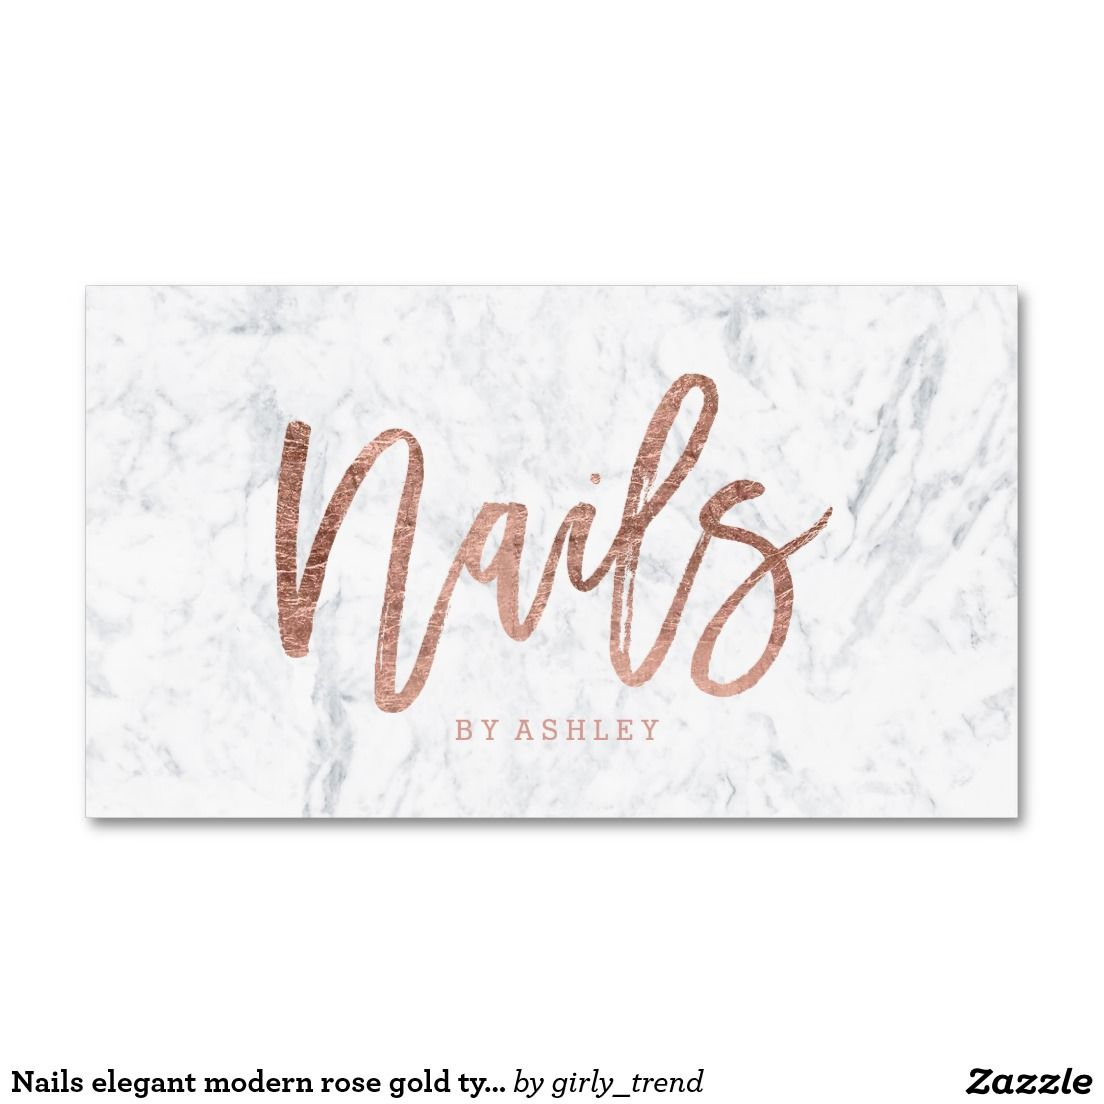 Nails elegant modern rose gold typography marble business card ...